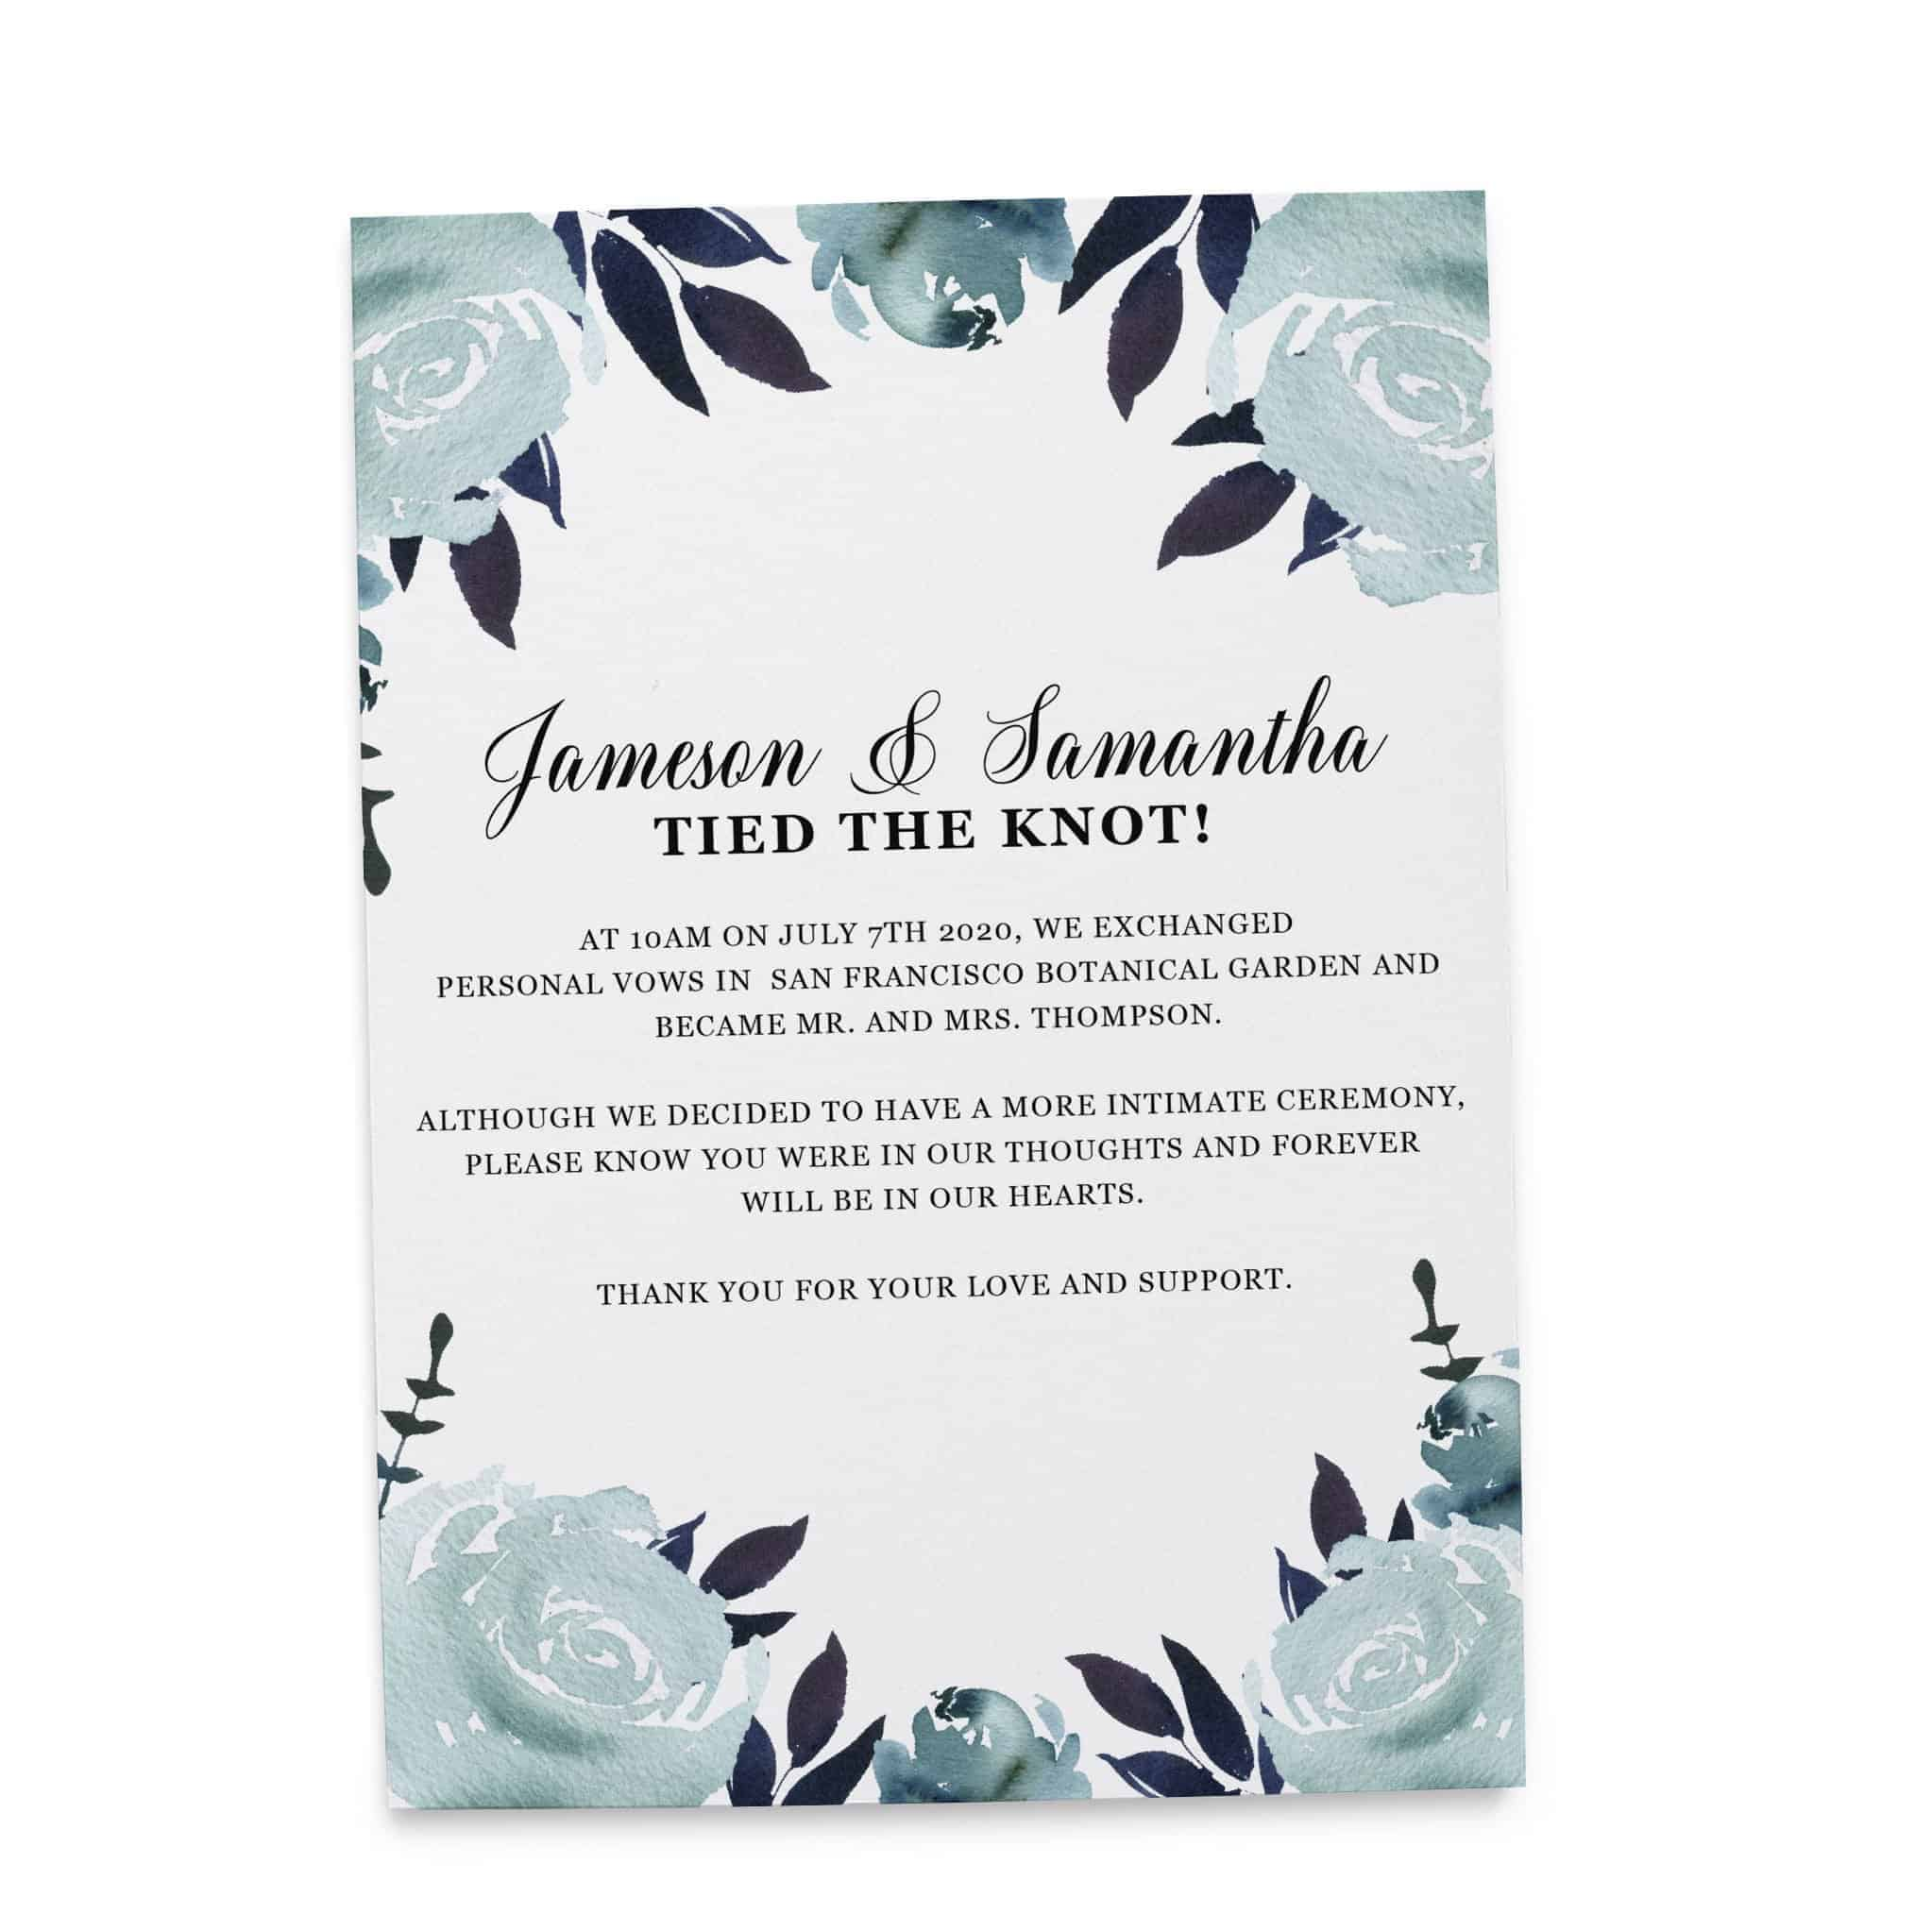 """Elopement Announcement Cards """"Tied the Knot!"""", Wedding Announcement Cards, Post- Wedding Announcement Cards, Blue Water-Floral Theme"""